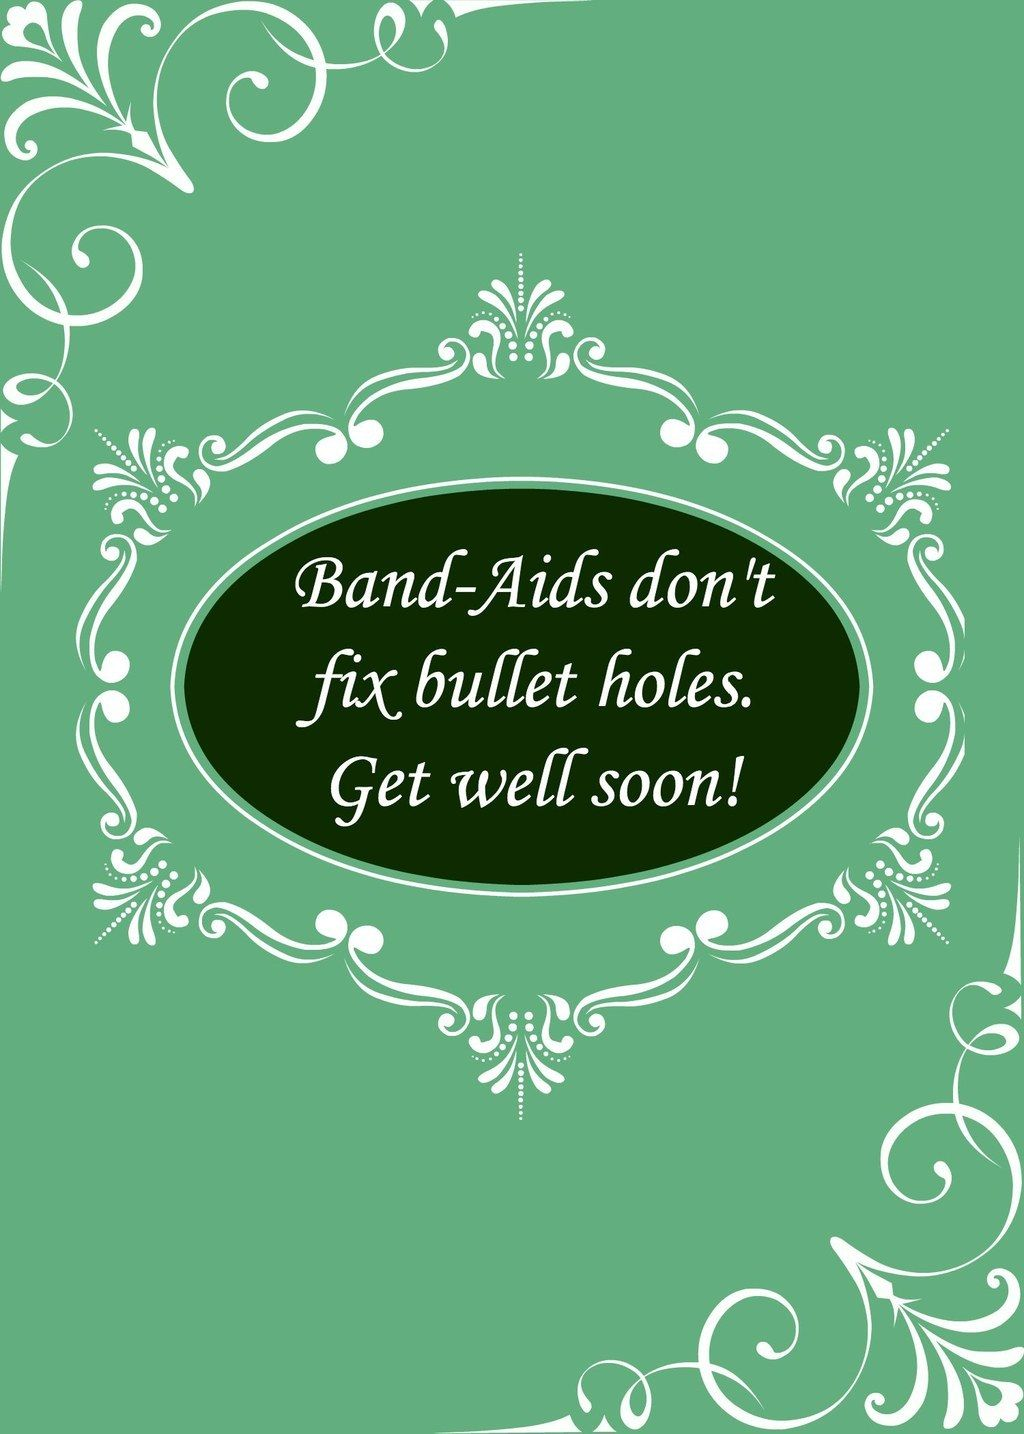 Get Well Soon Pinterest Taylor Swift And Swift